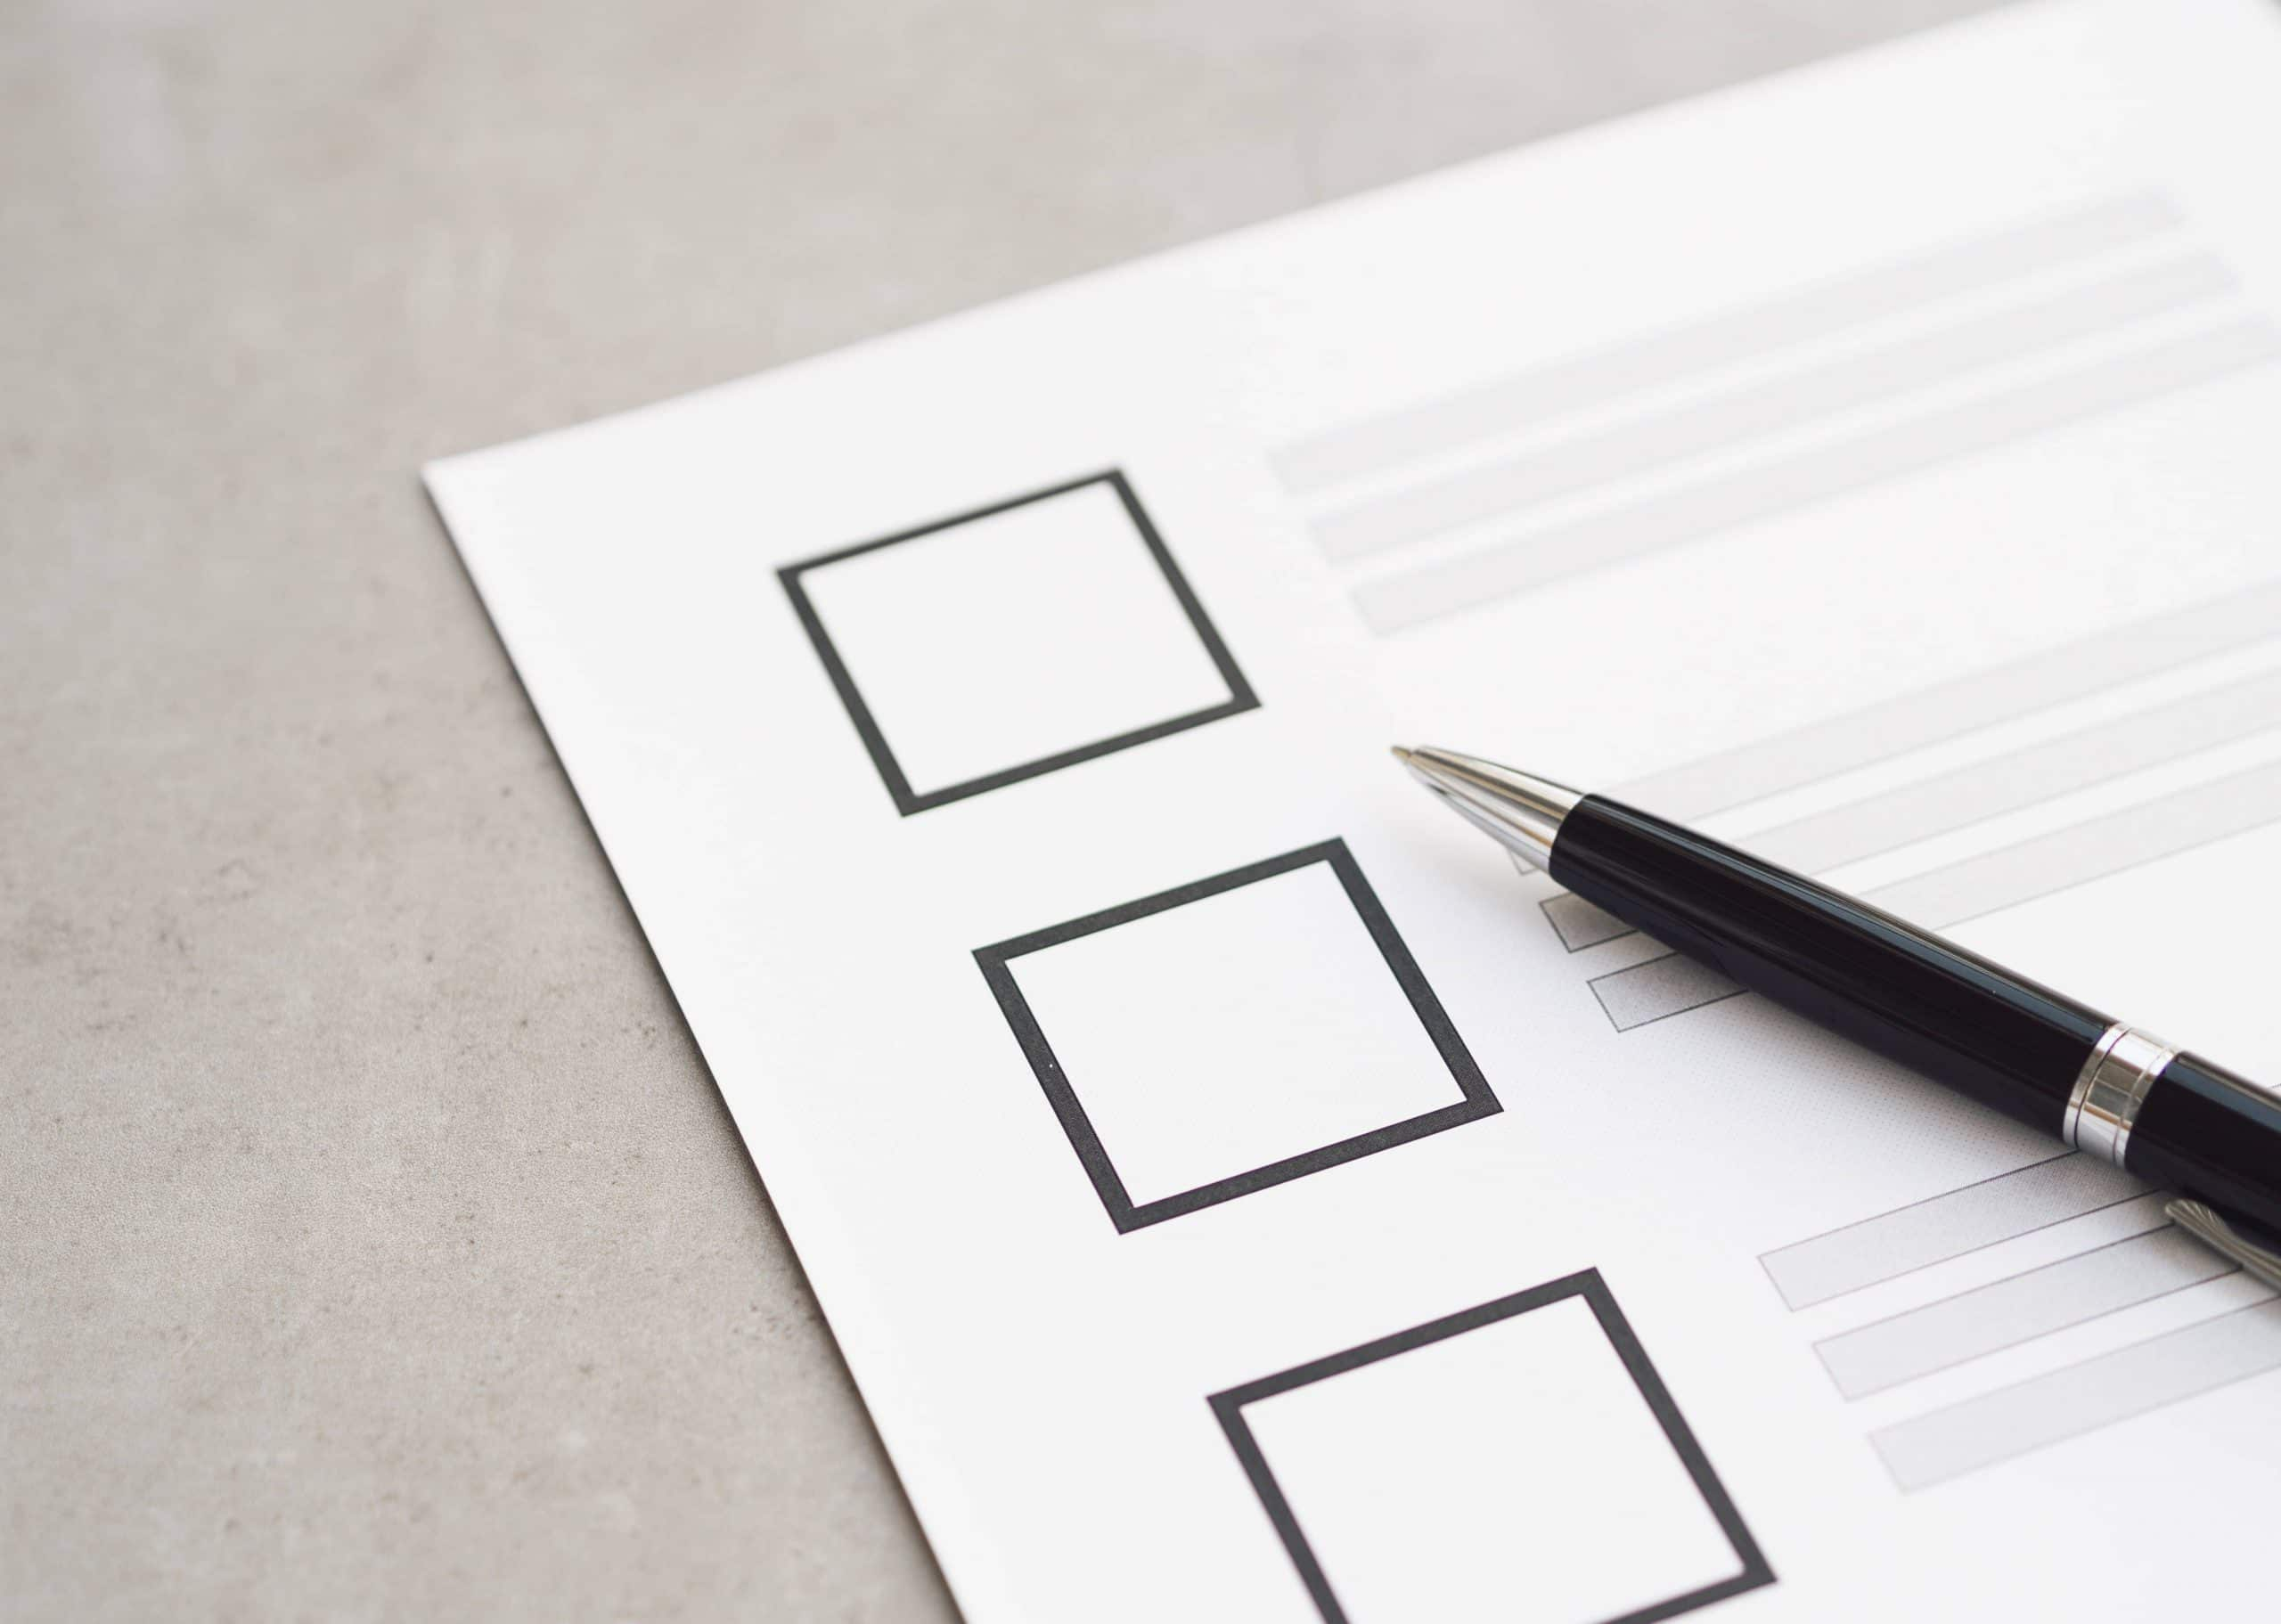 close-up-uncompleted-election-questionnaire-with-black-pen-min